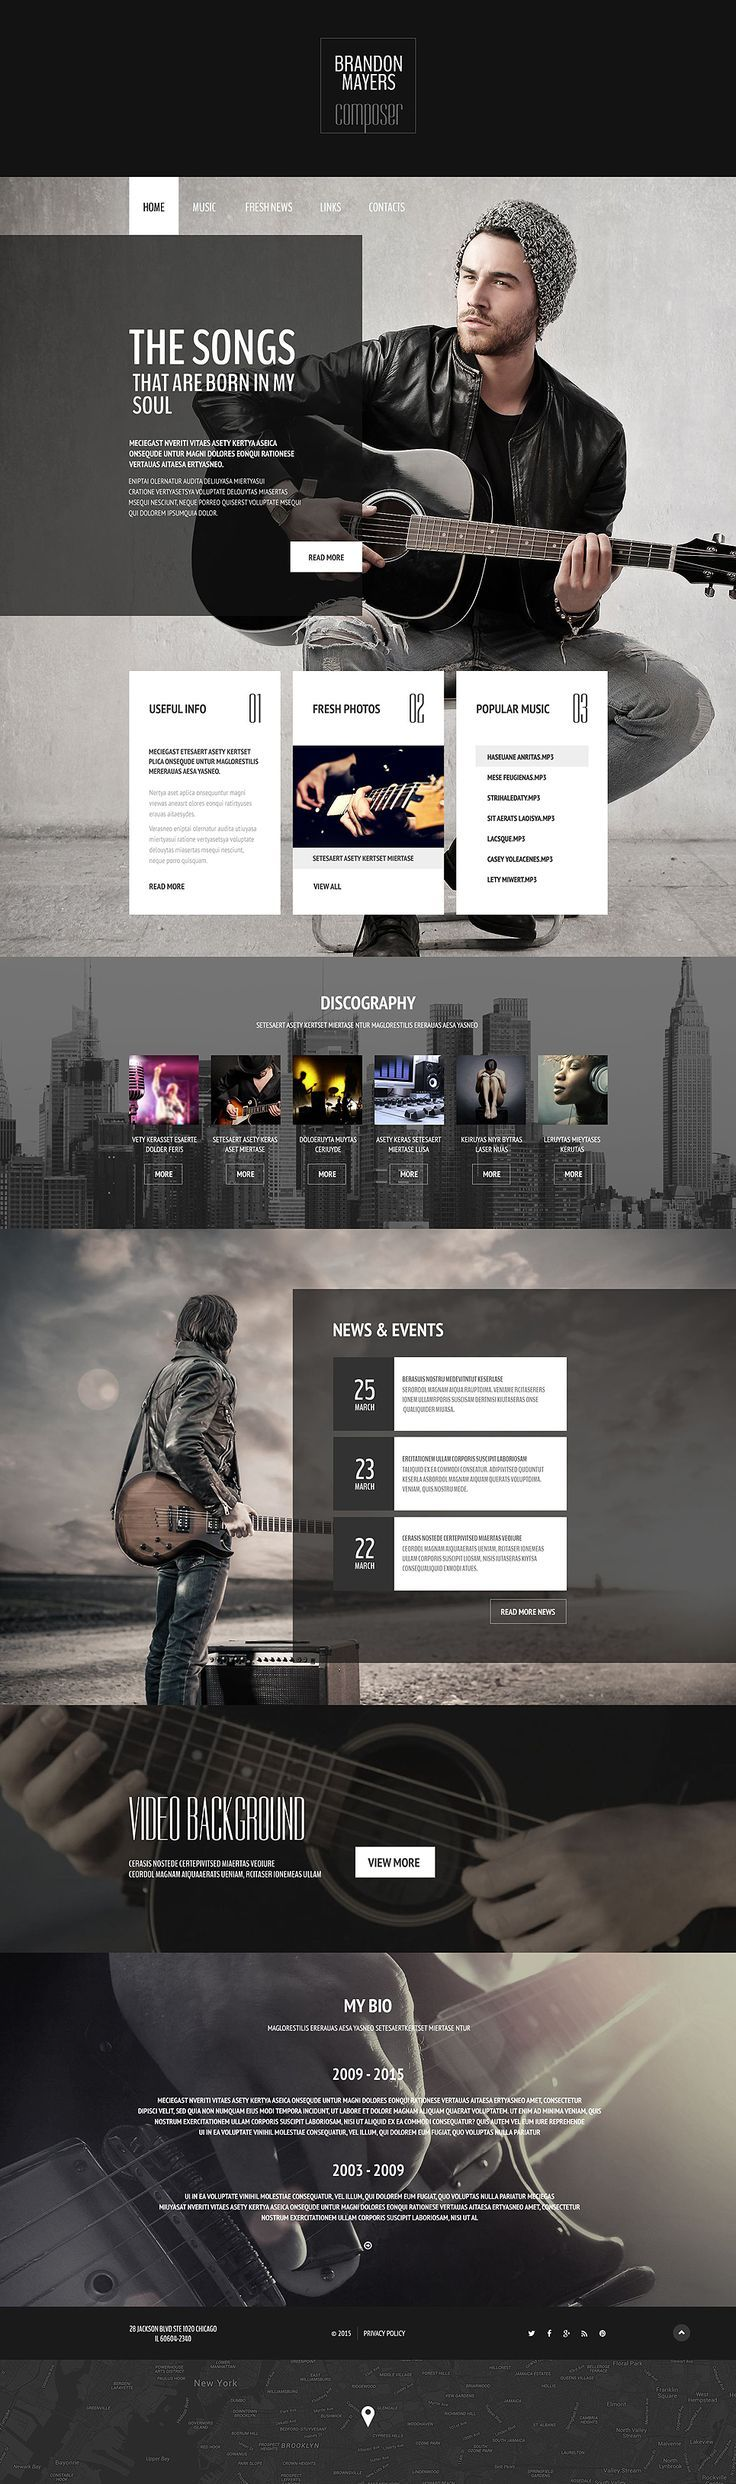 Composers portfolio website template abovecouch